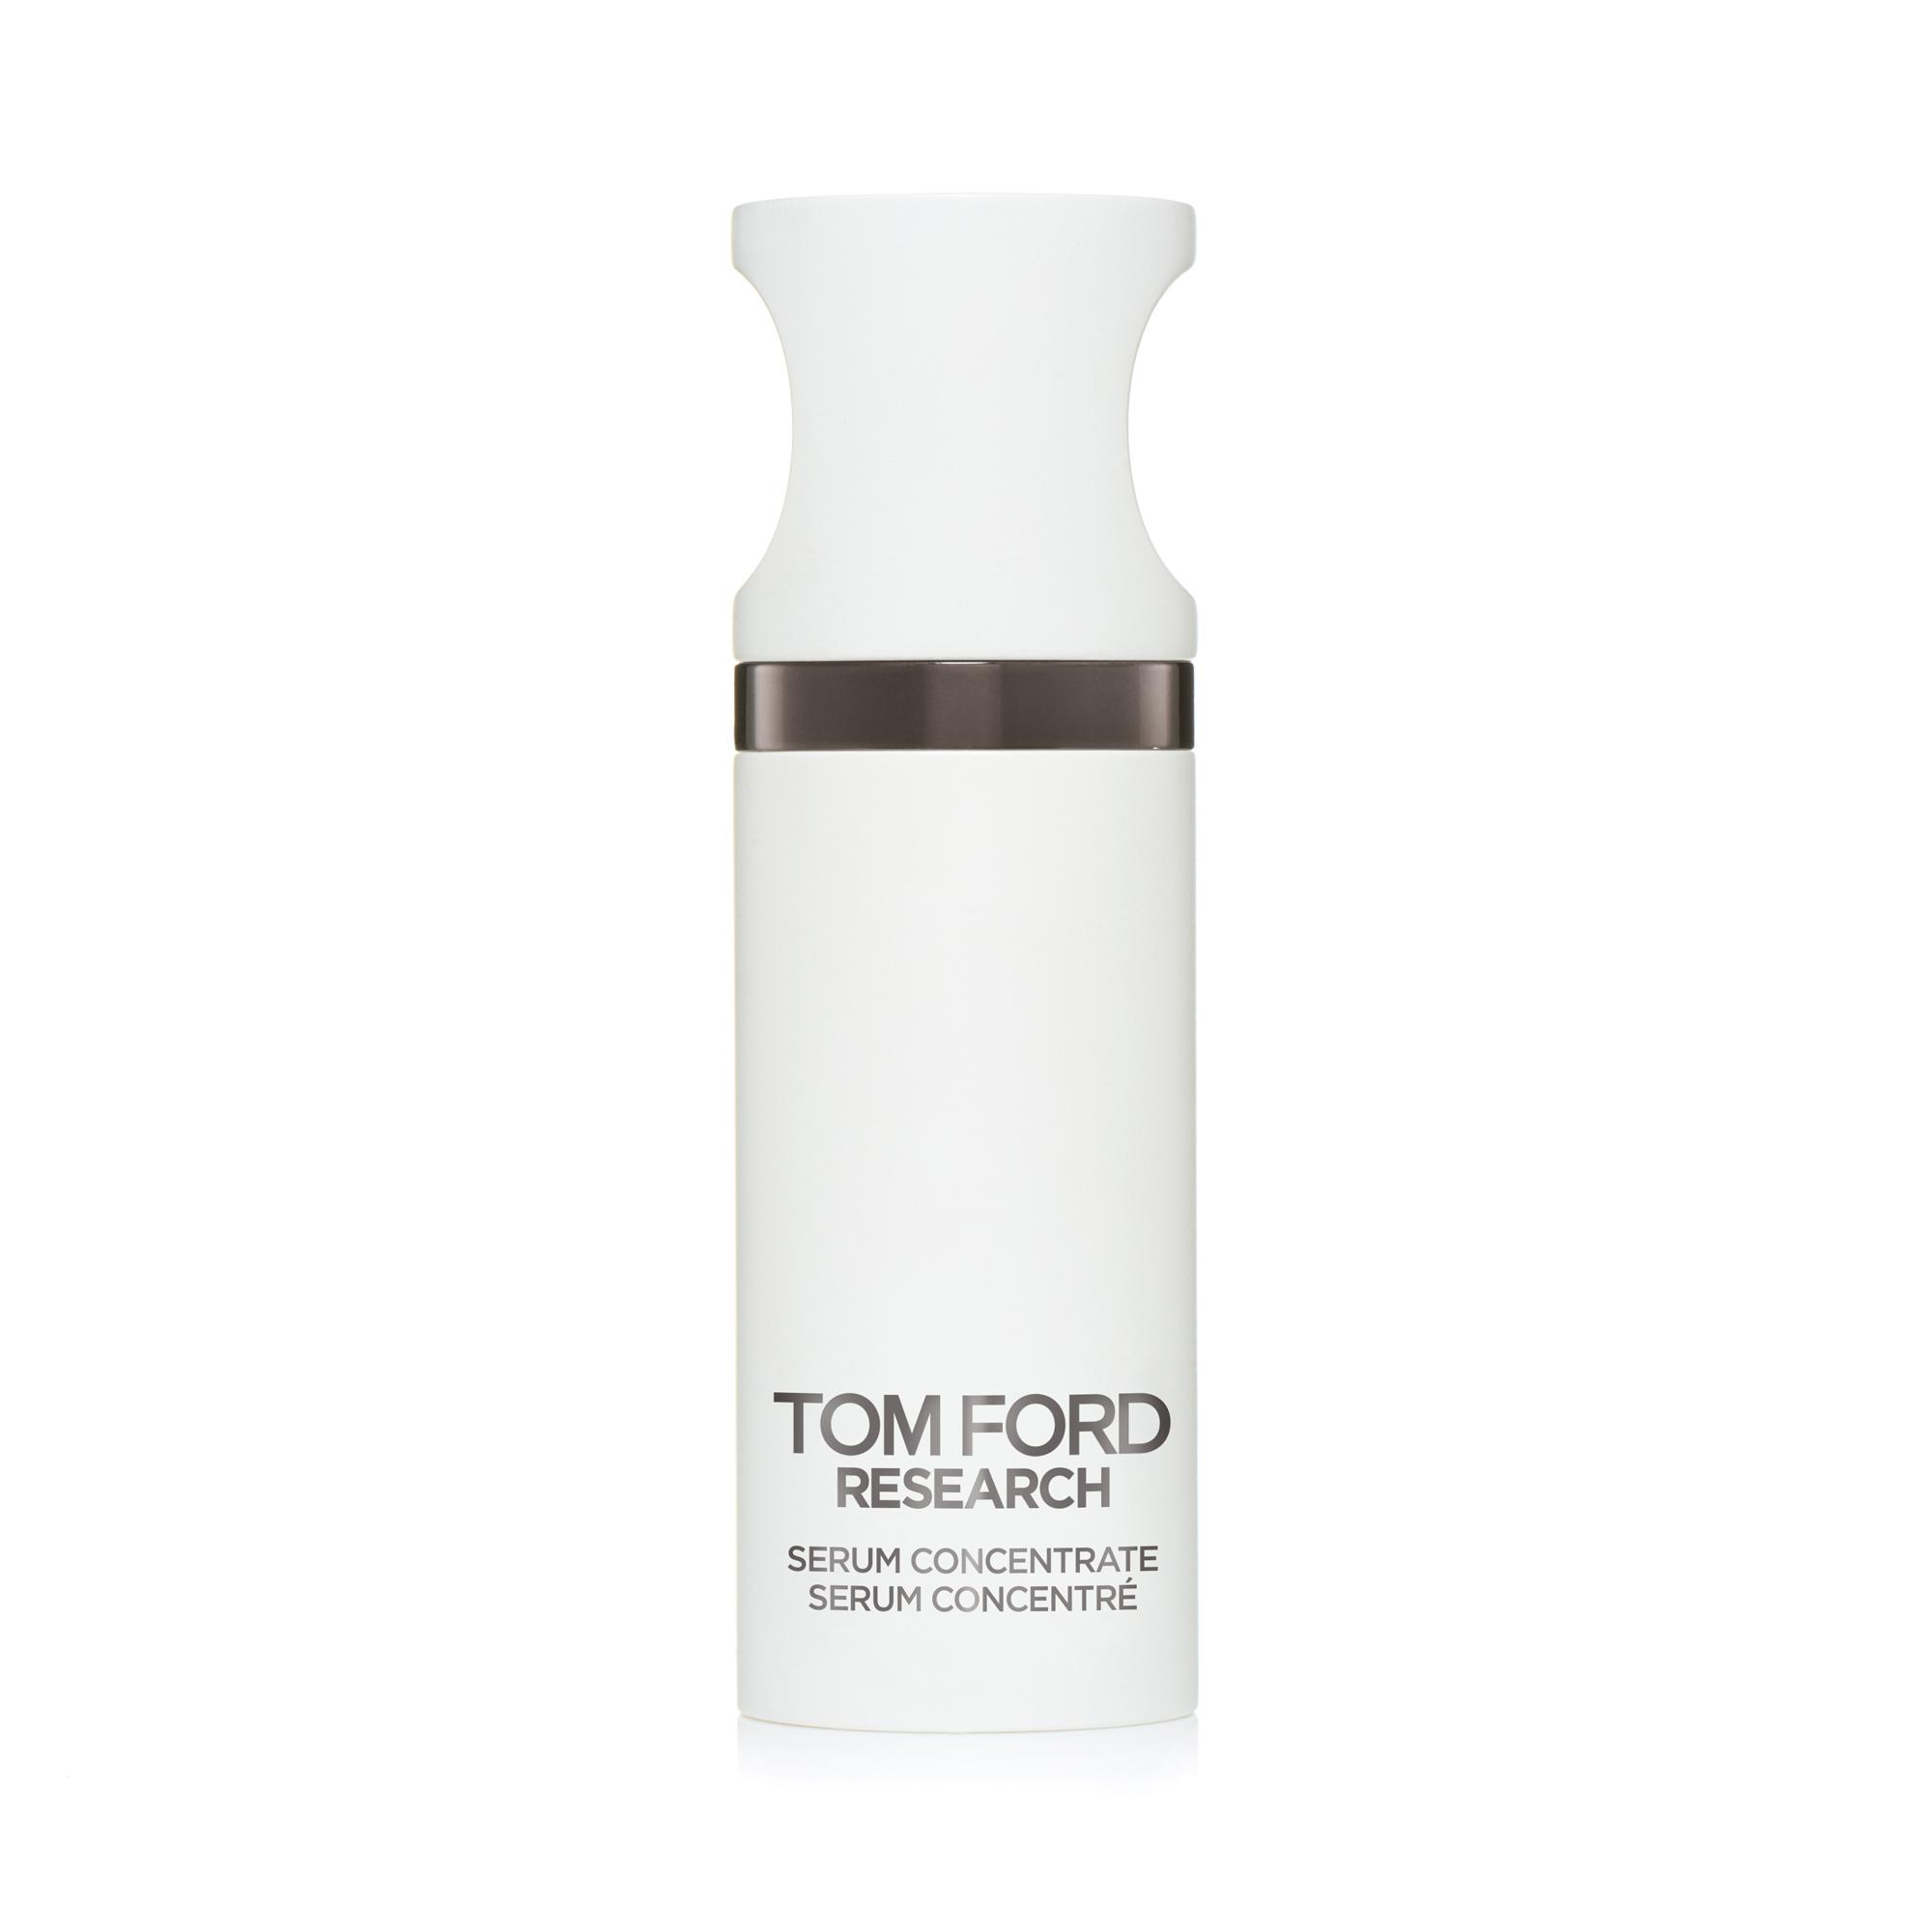 TFB - Research Serum Concentrate Image